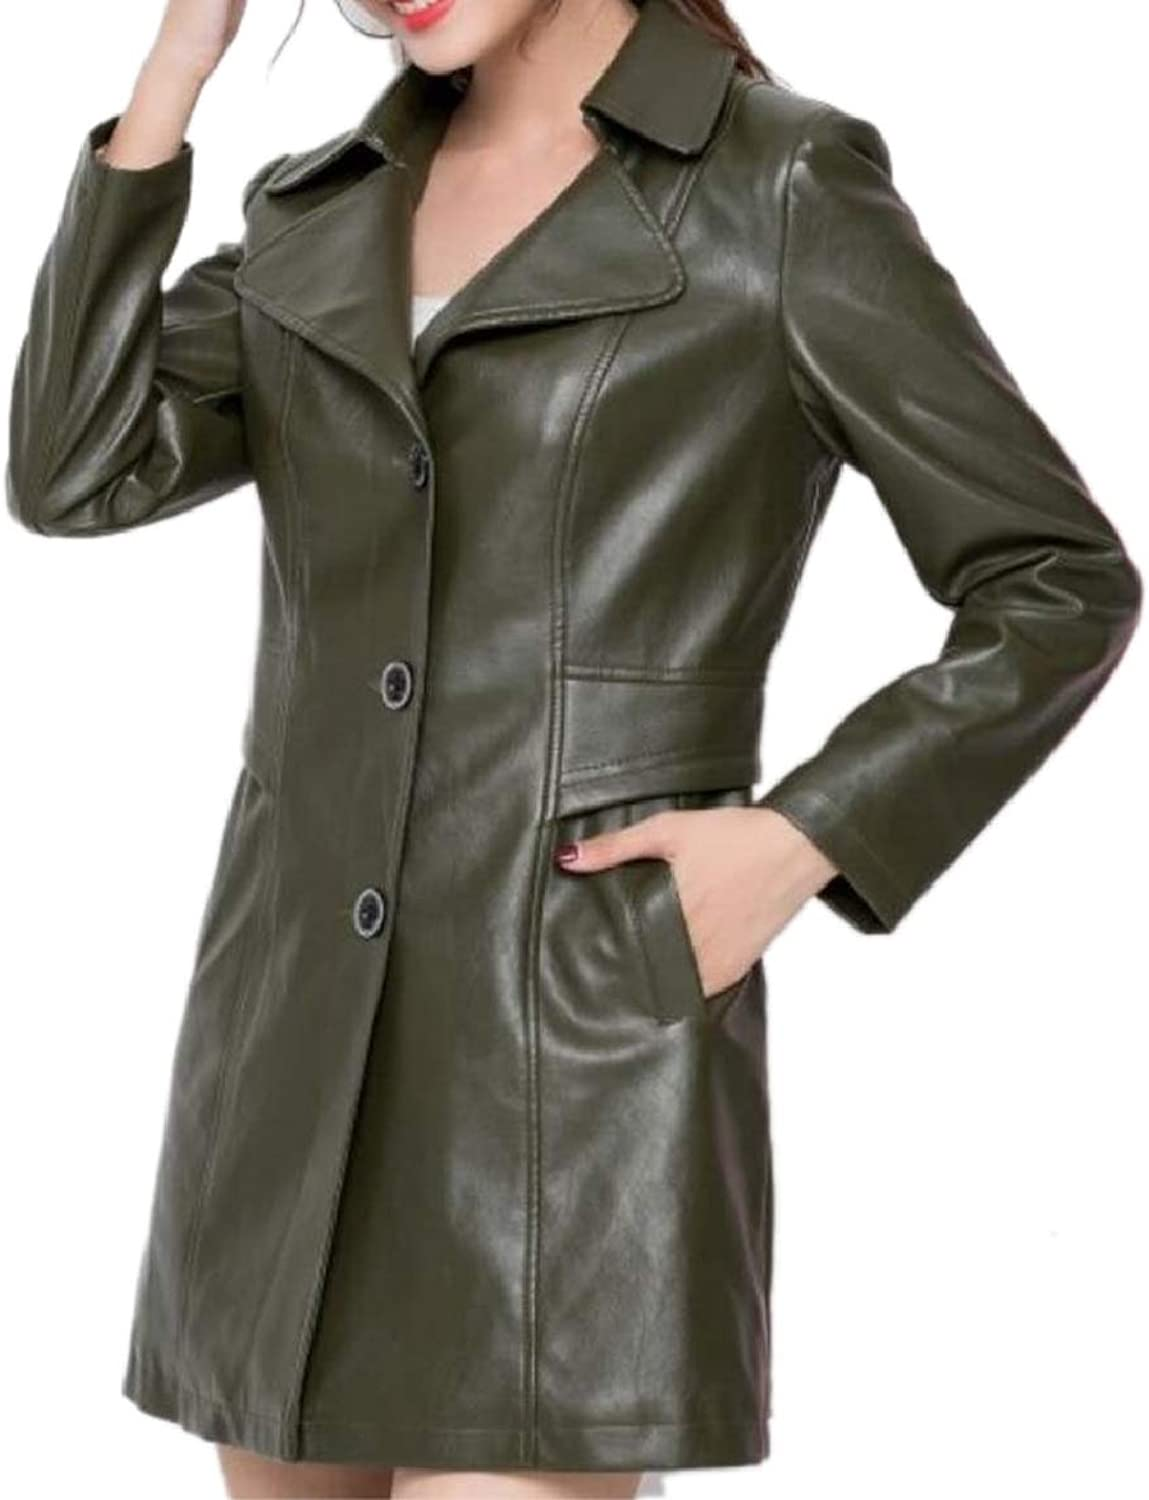 PujinggeCA Women Single Breasted Slim Fit Faux Leather Casual Trenchcoat Jacket Coat